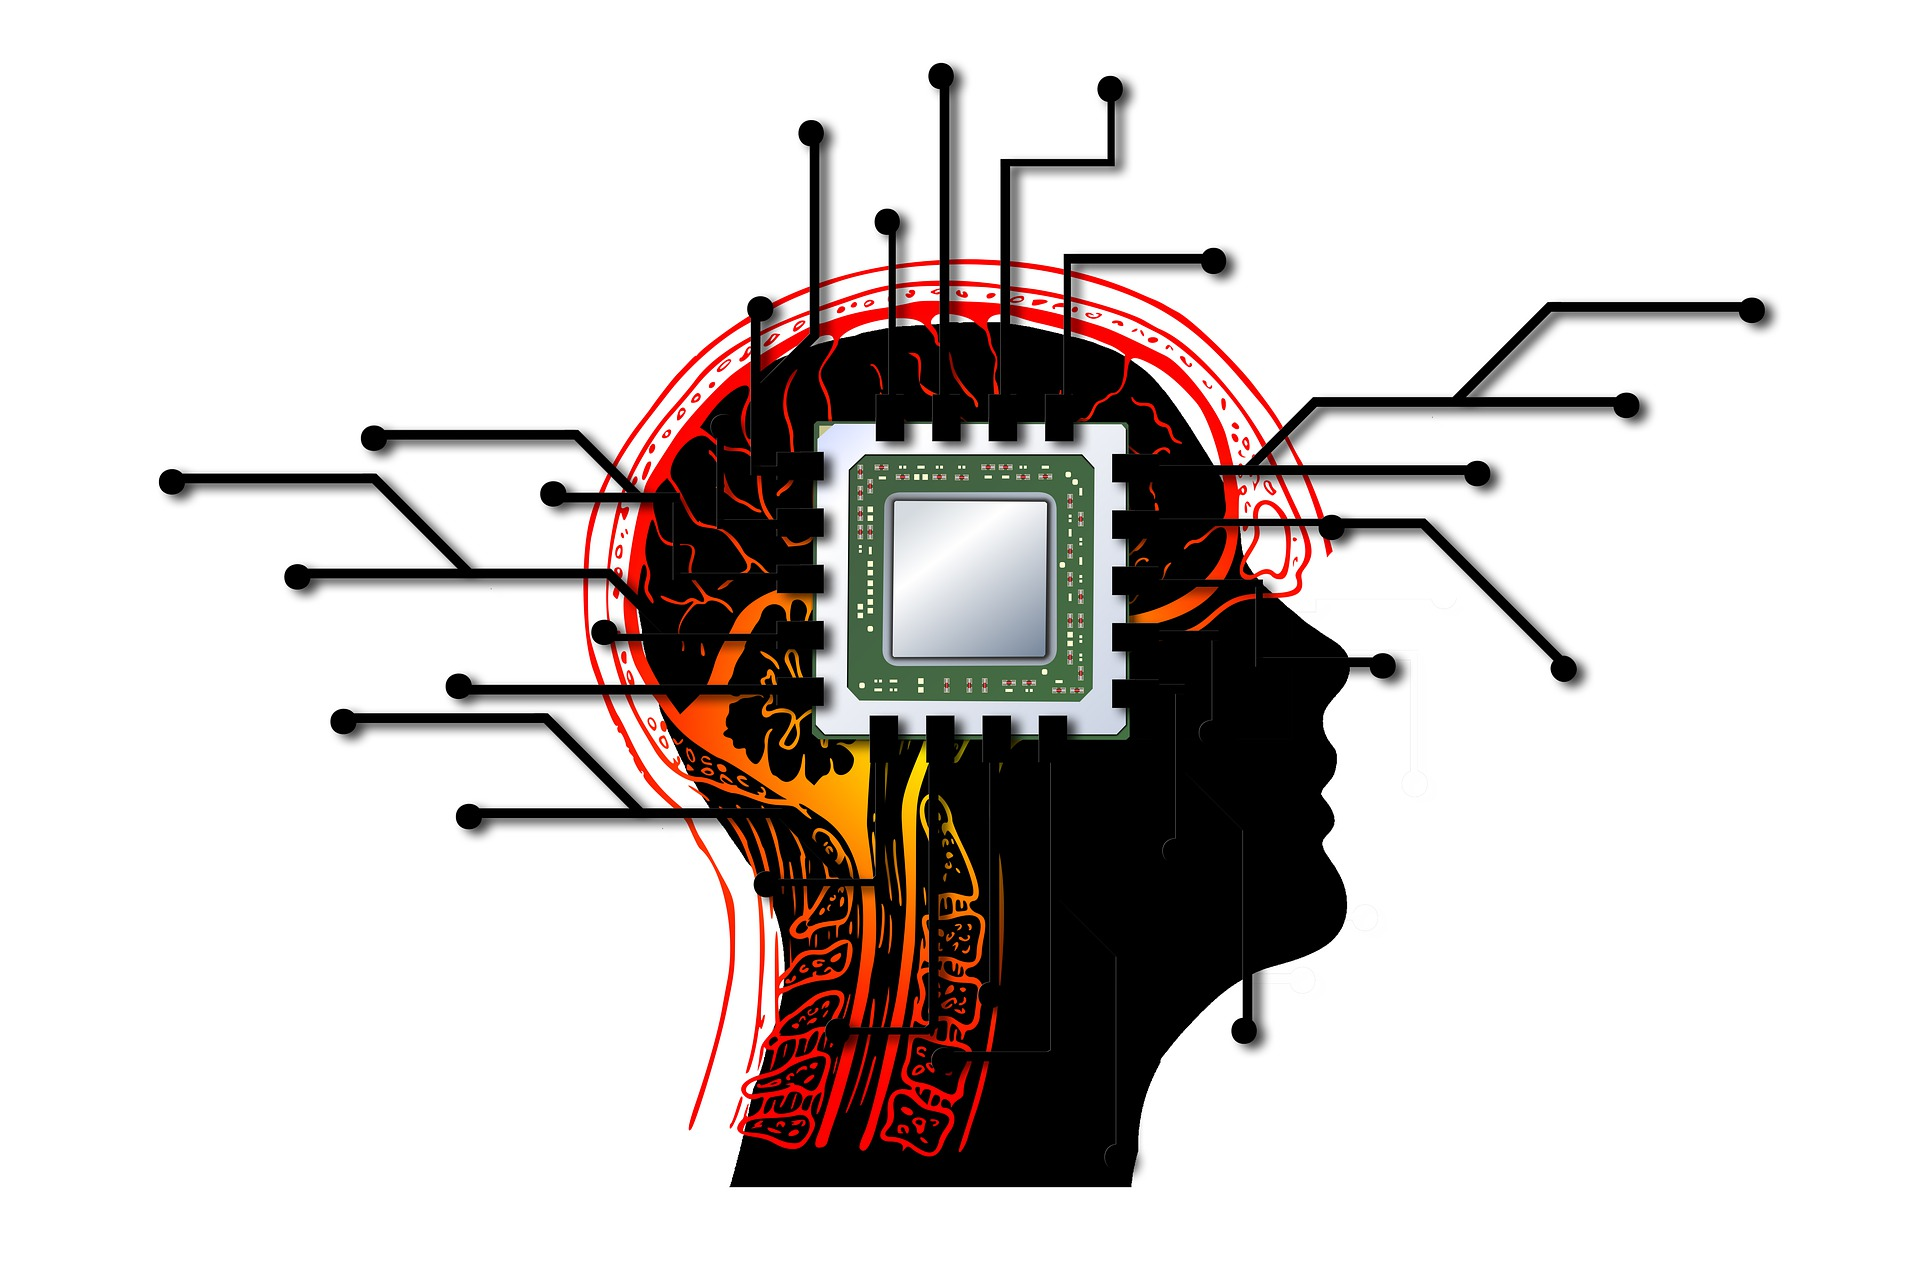 brain-tracing-with-computer-chip